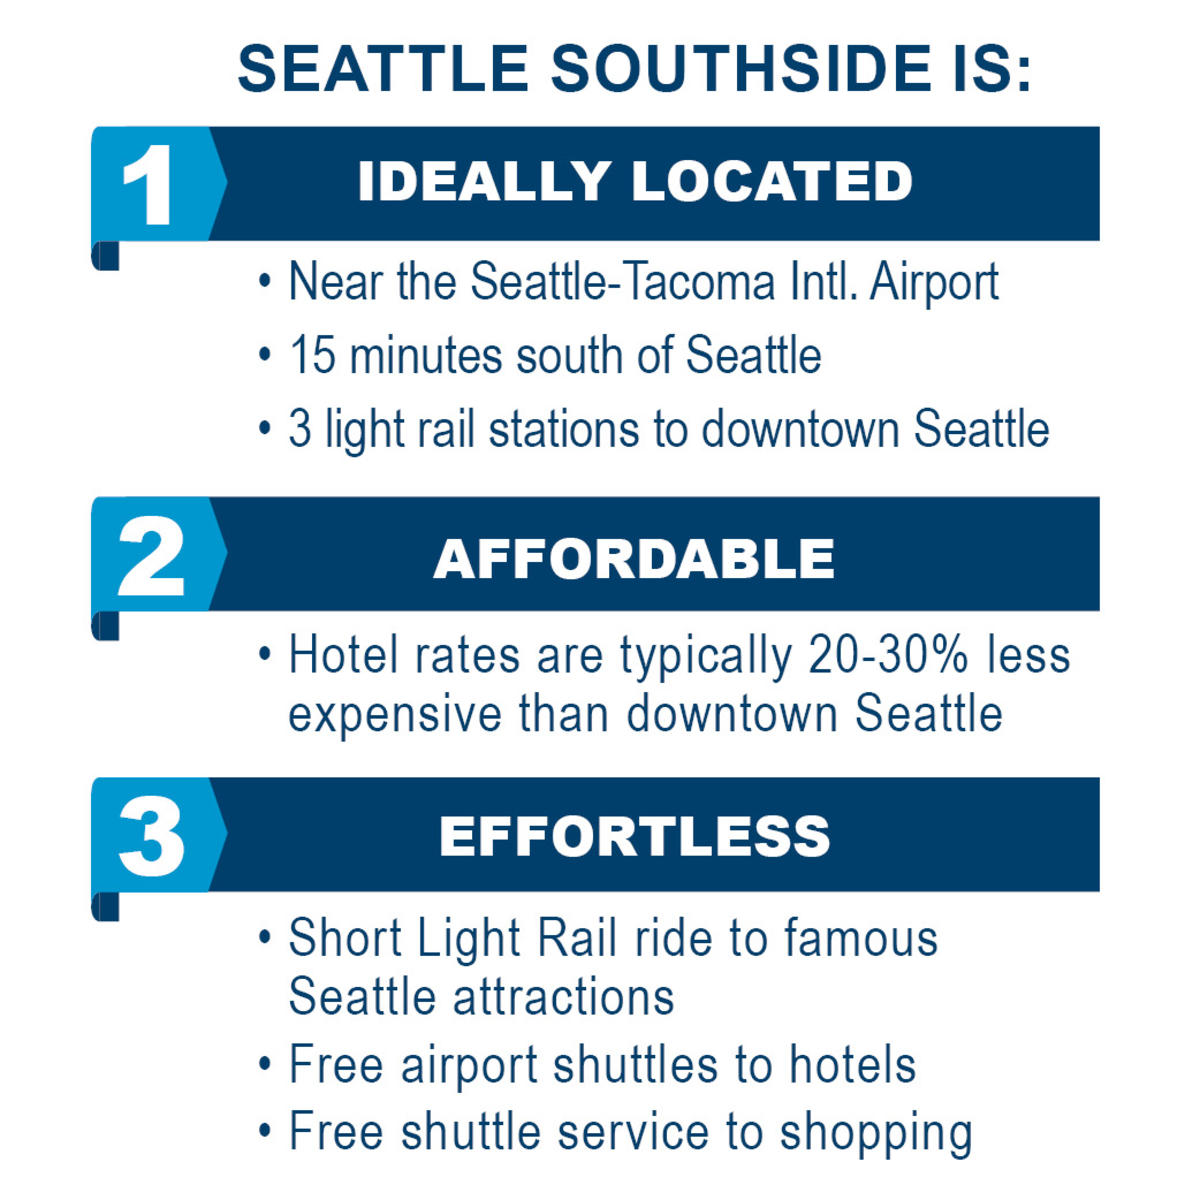 Seattle Southside is: 1. Ideally located near the Seattle-Tacoma International Airport, 15 minutes South of downtown Seattle & 20 minutes North of Tacoma. Outside of the downtown corridor = less traffic & easy access to freeways. 2. Affordable: Hotel rates are typically 20-30% less expensive than downtown Seattle and average attendee spend is less based on transportation costs, room rate, and taxes. 3. Effortless: A short light rail ride takes guests to the famous Seattle attractions, including Pike Place Market and the Space Needle. Complimentary airport shuttles & a shuttle to Westfield Southcenter Shopping Center, the largest shopping mall in the Pacific Northwest